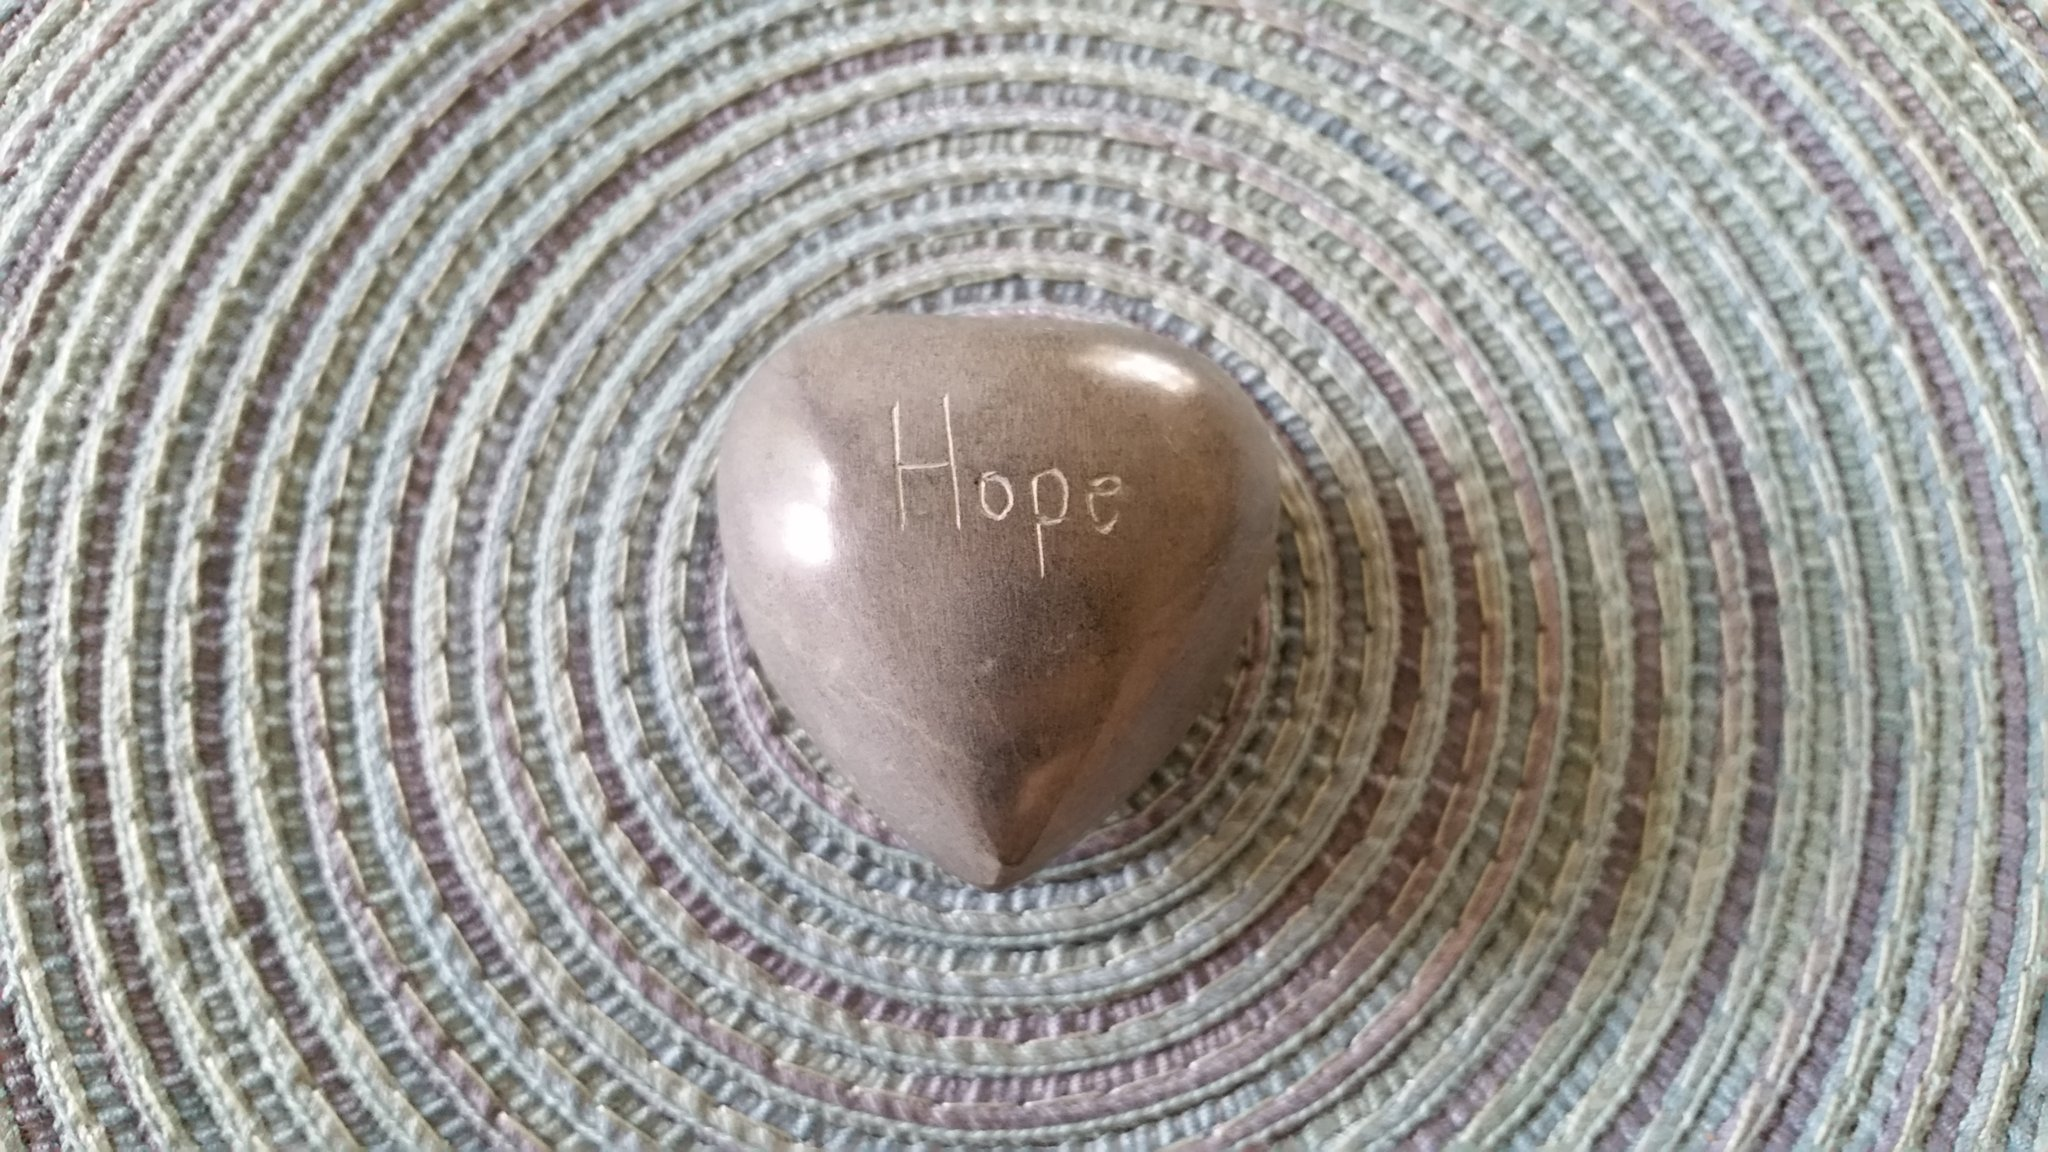 No matter the size of your burdens, keep hope in your heart. #sundaymorning https://t.co/xPc4Qx5y8F